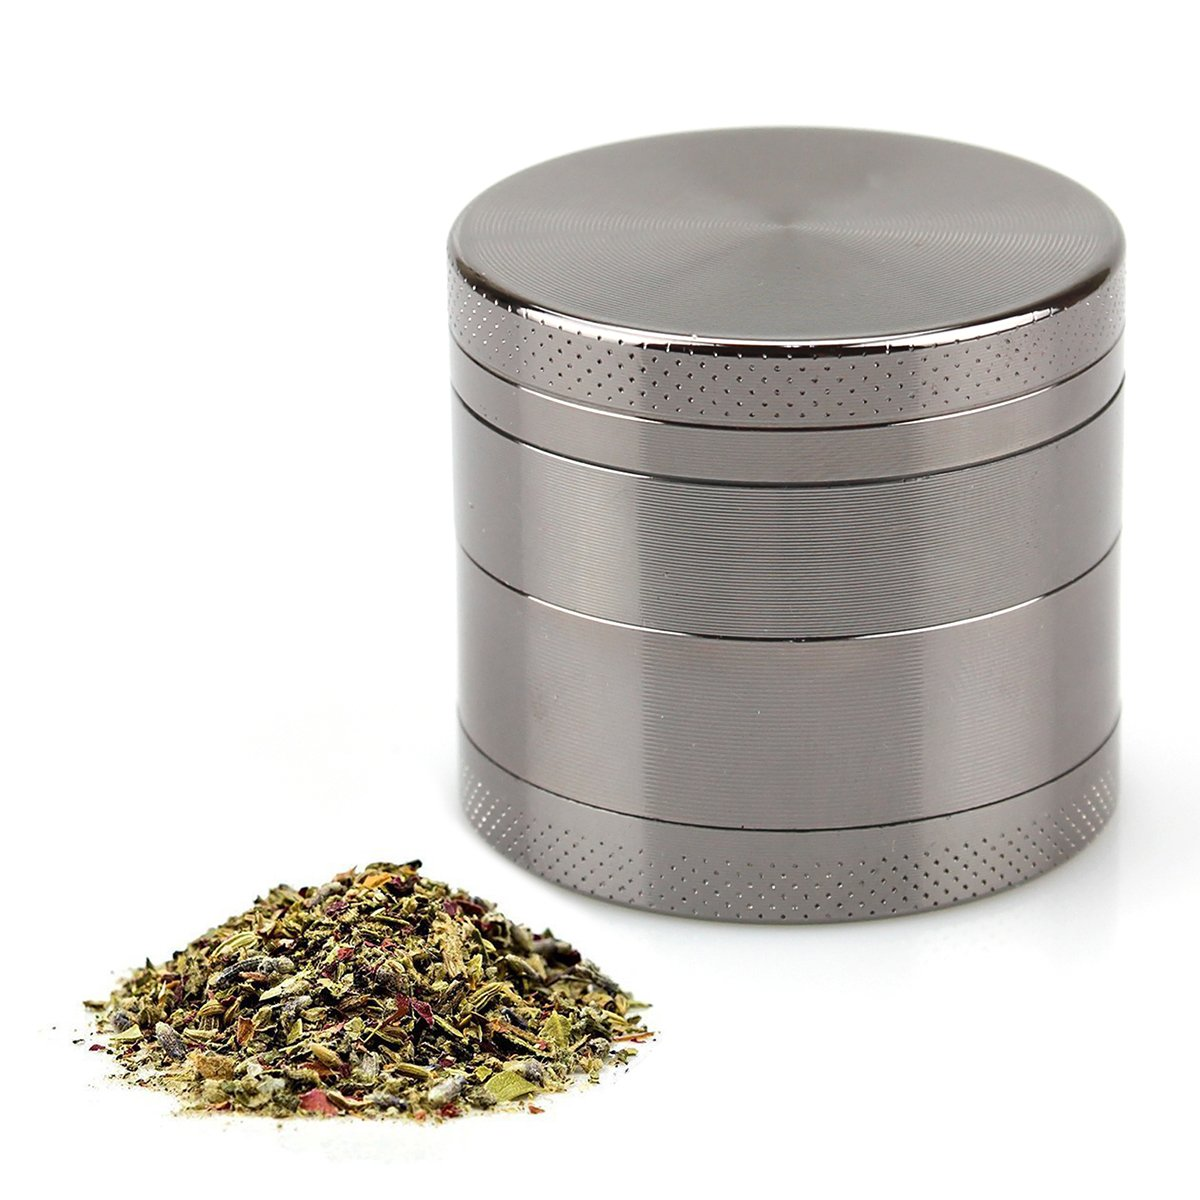 Unicoco Grinder Spices Grinder Metal Crusher for Herbs Tobacco 4Parts Very Durable